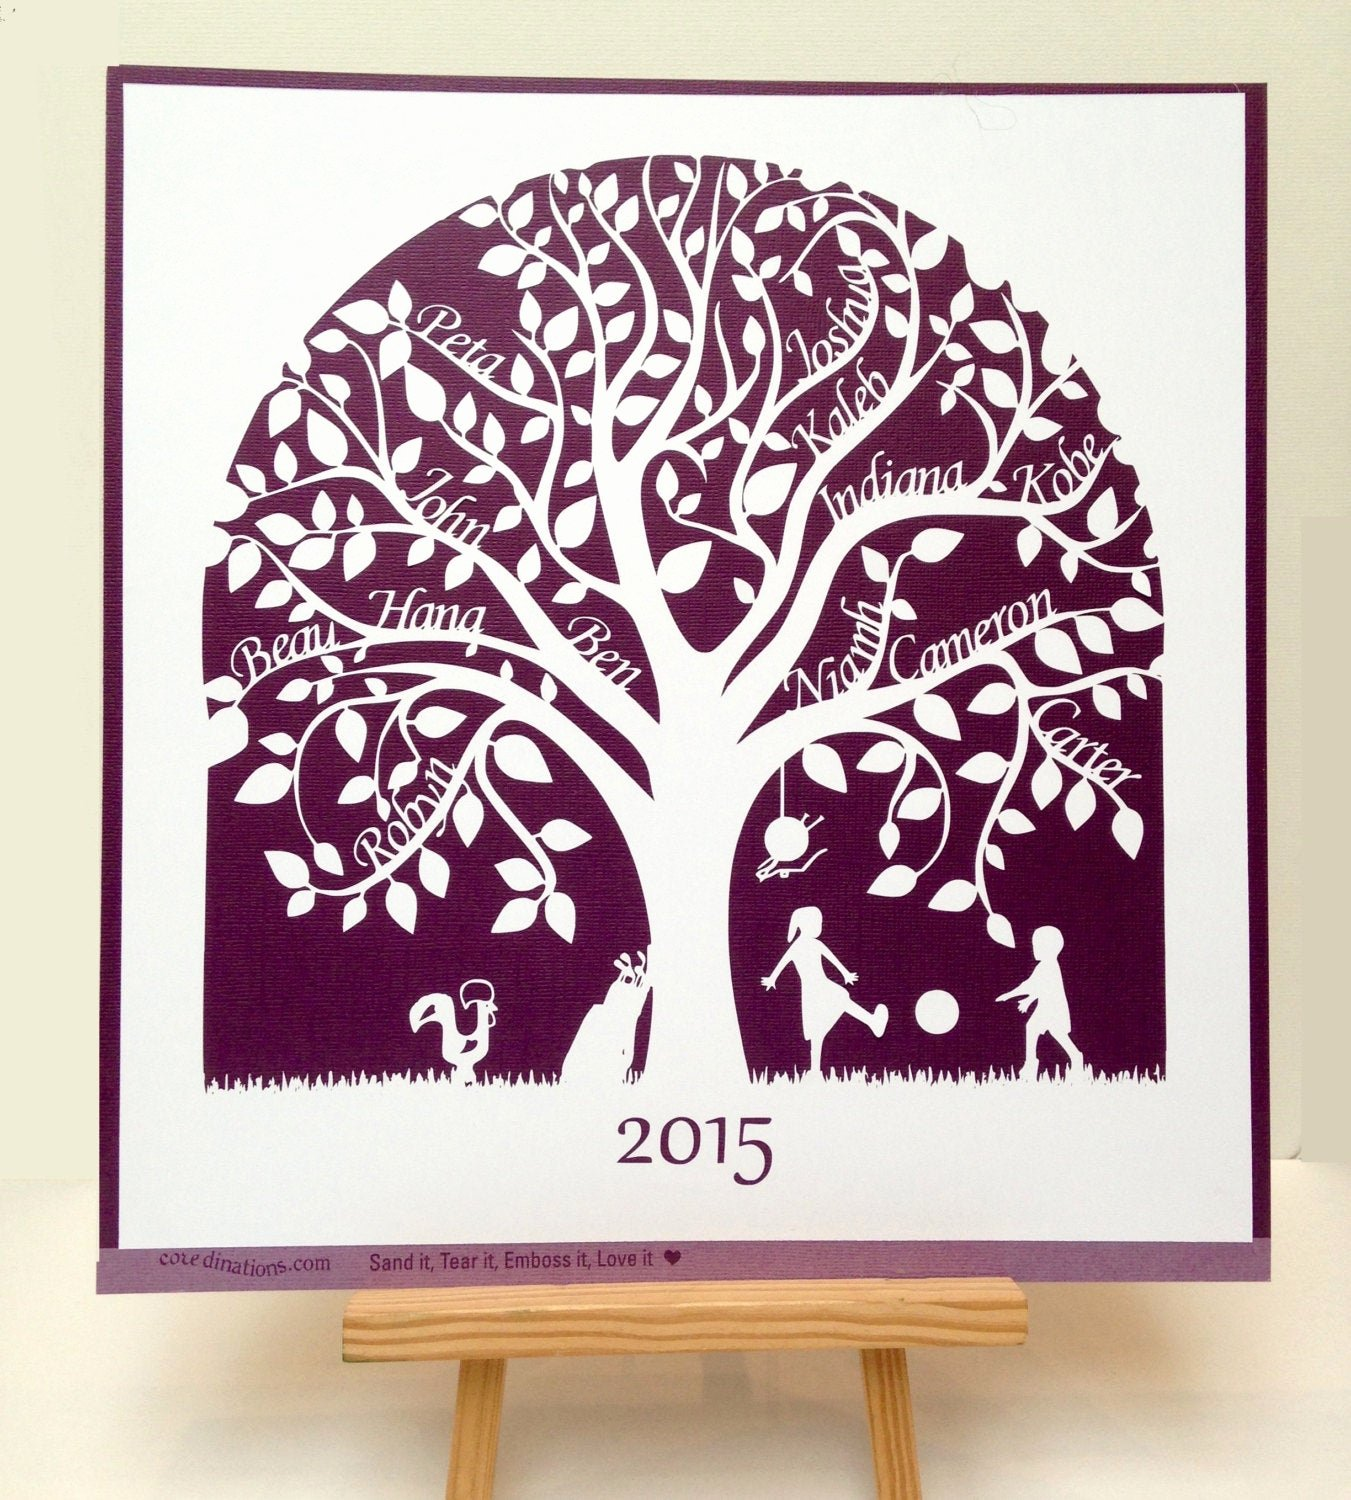 Family Tree Cut Out Inspirational Family Tree Paper Cut Home Decor Including Hobbies